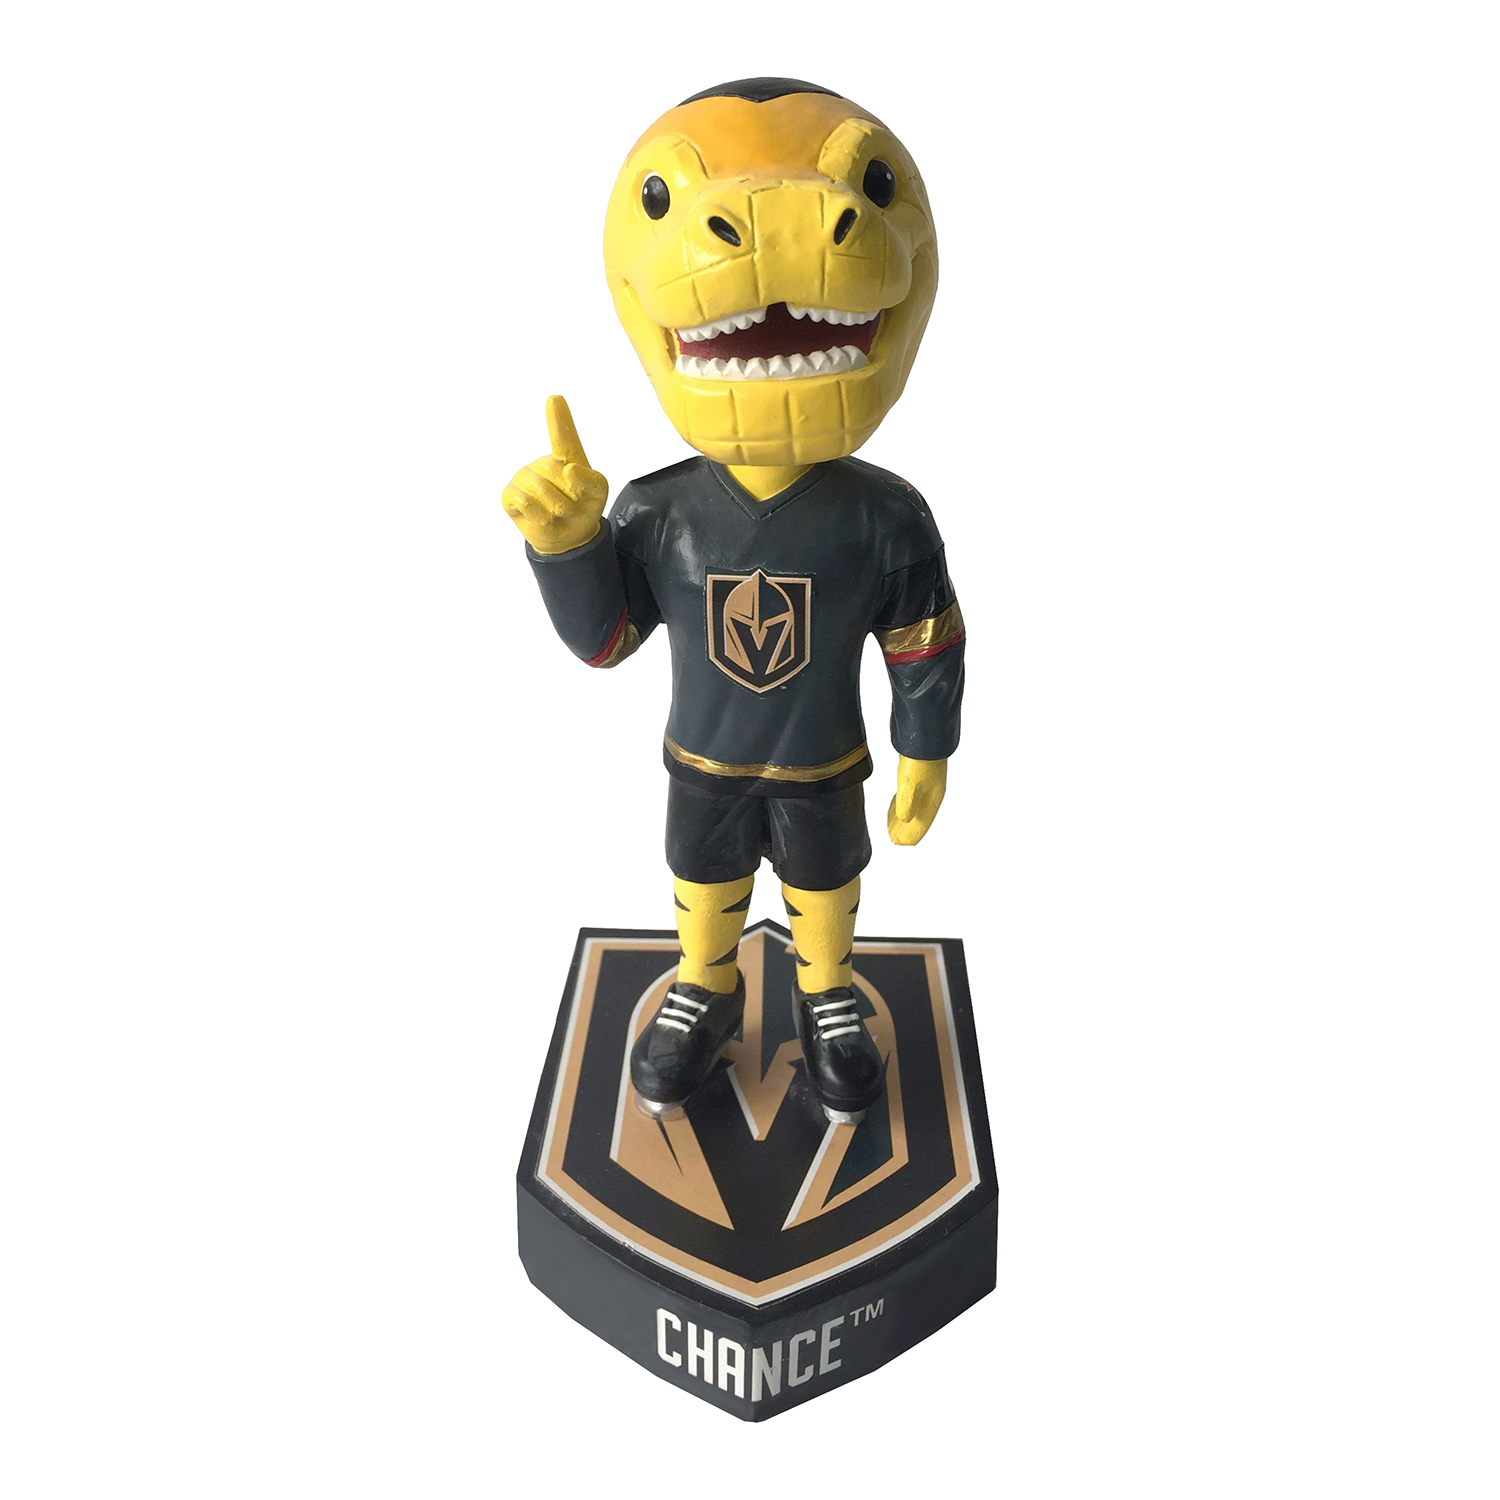 Vegas Golden Knights Chance Mascot Bobblehead